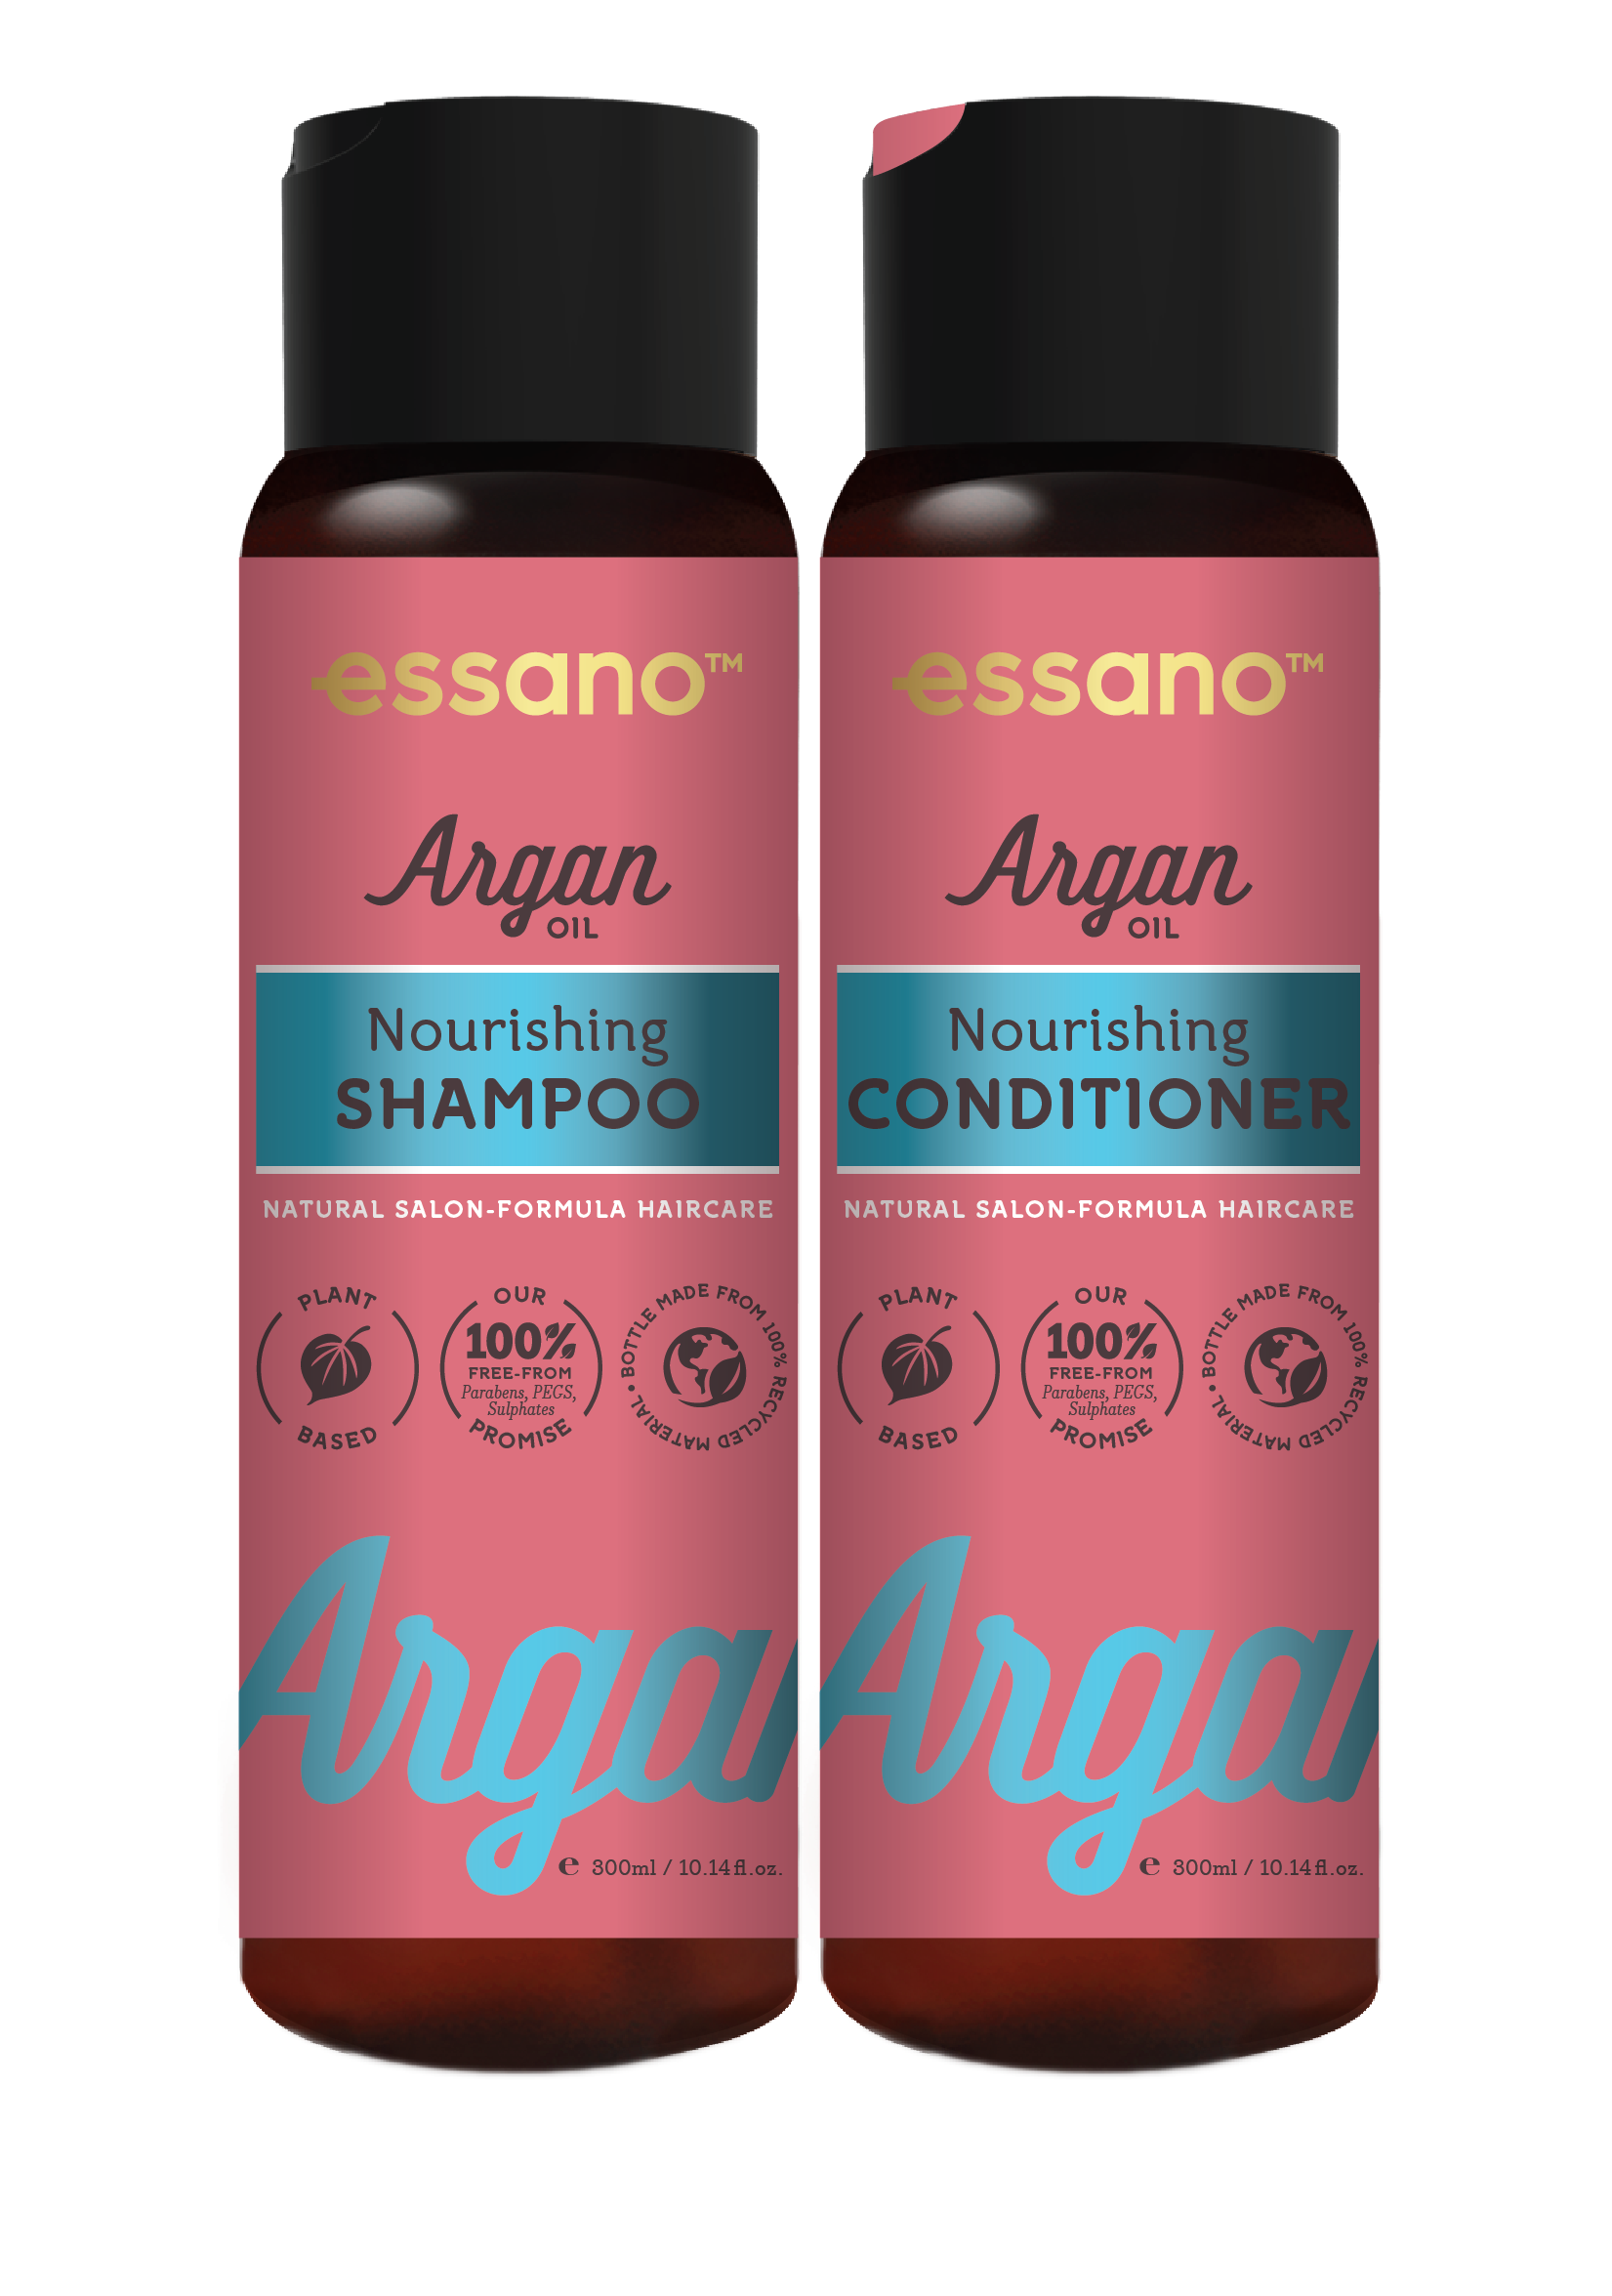 Essano Argan Oil of Morocco Nourishing Shampoo and Conditioner duo